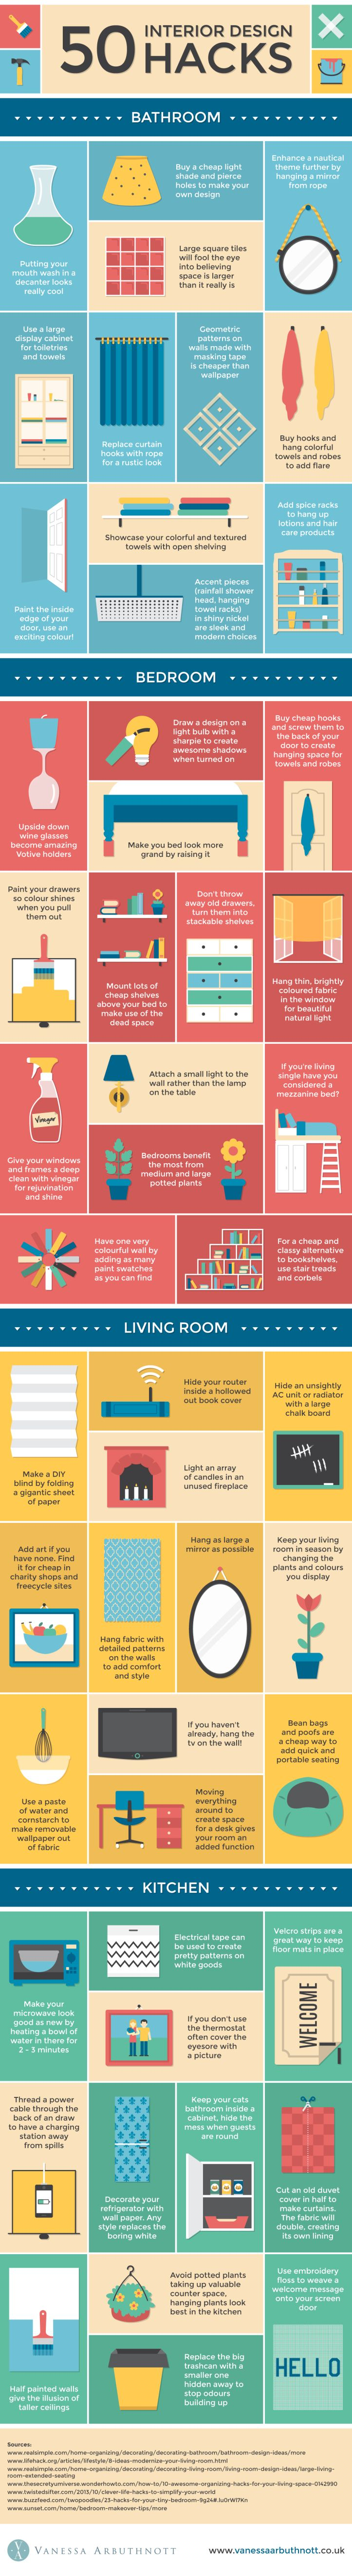 50 interior design hacks infographic interiordesign design